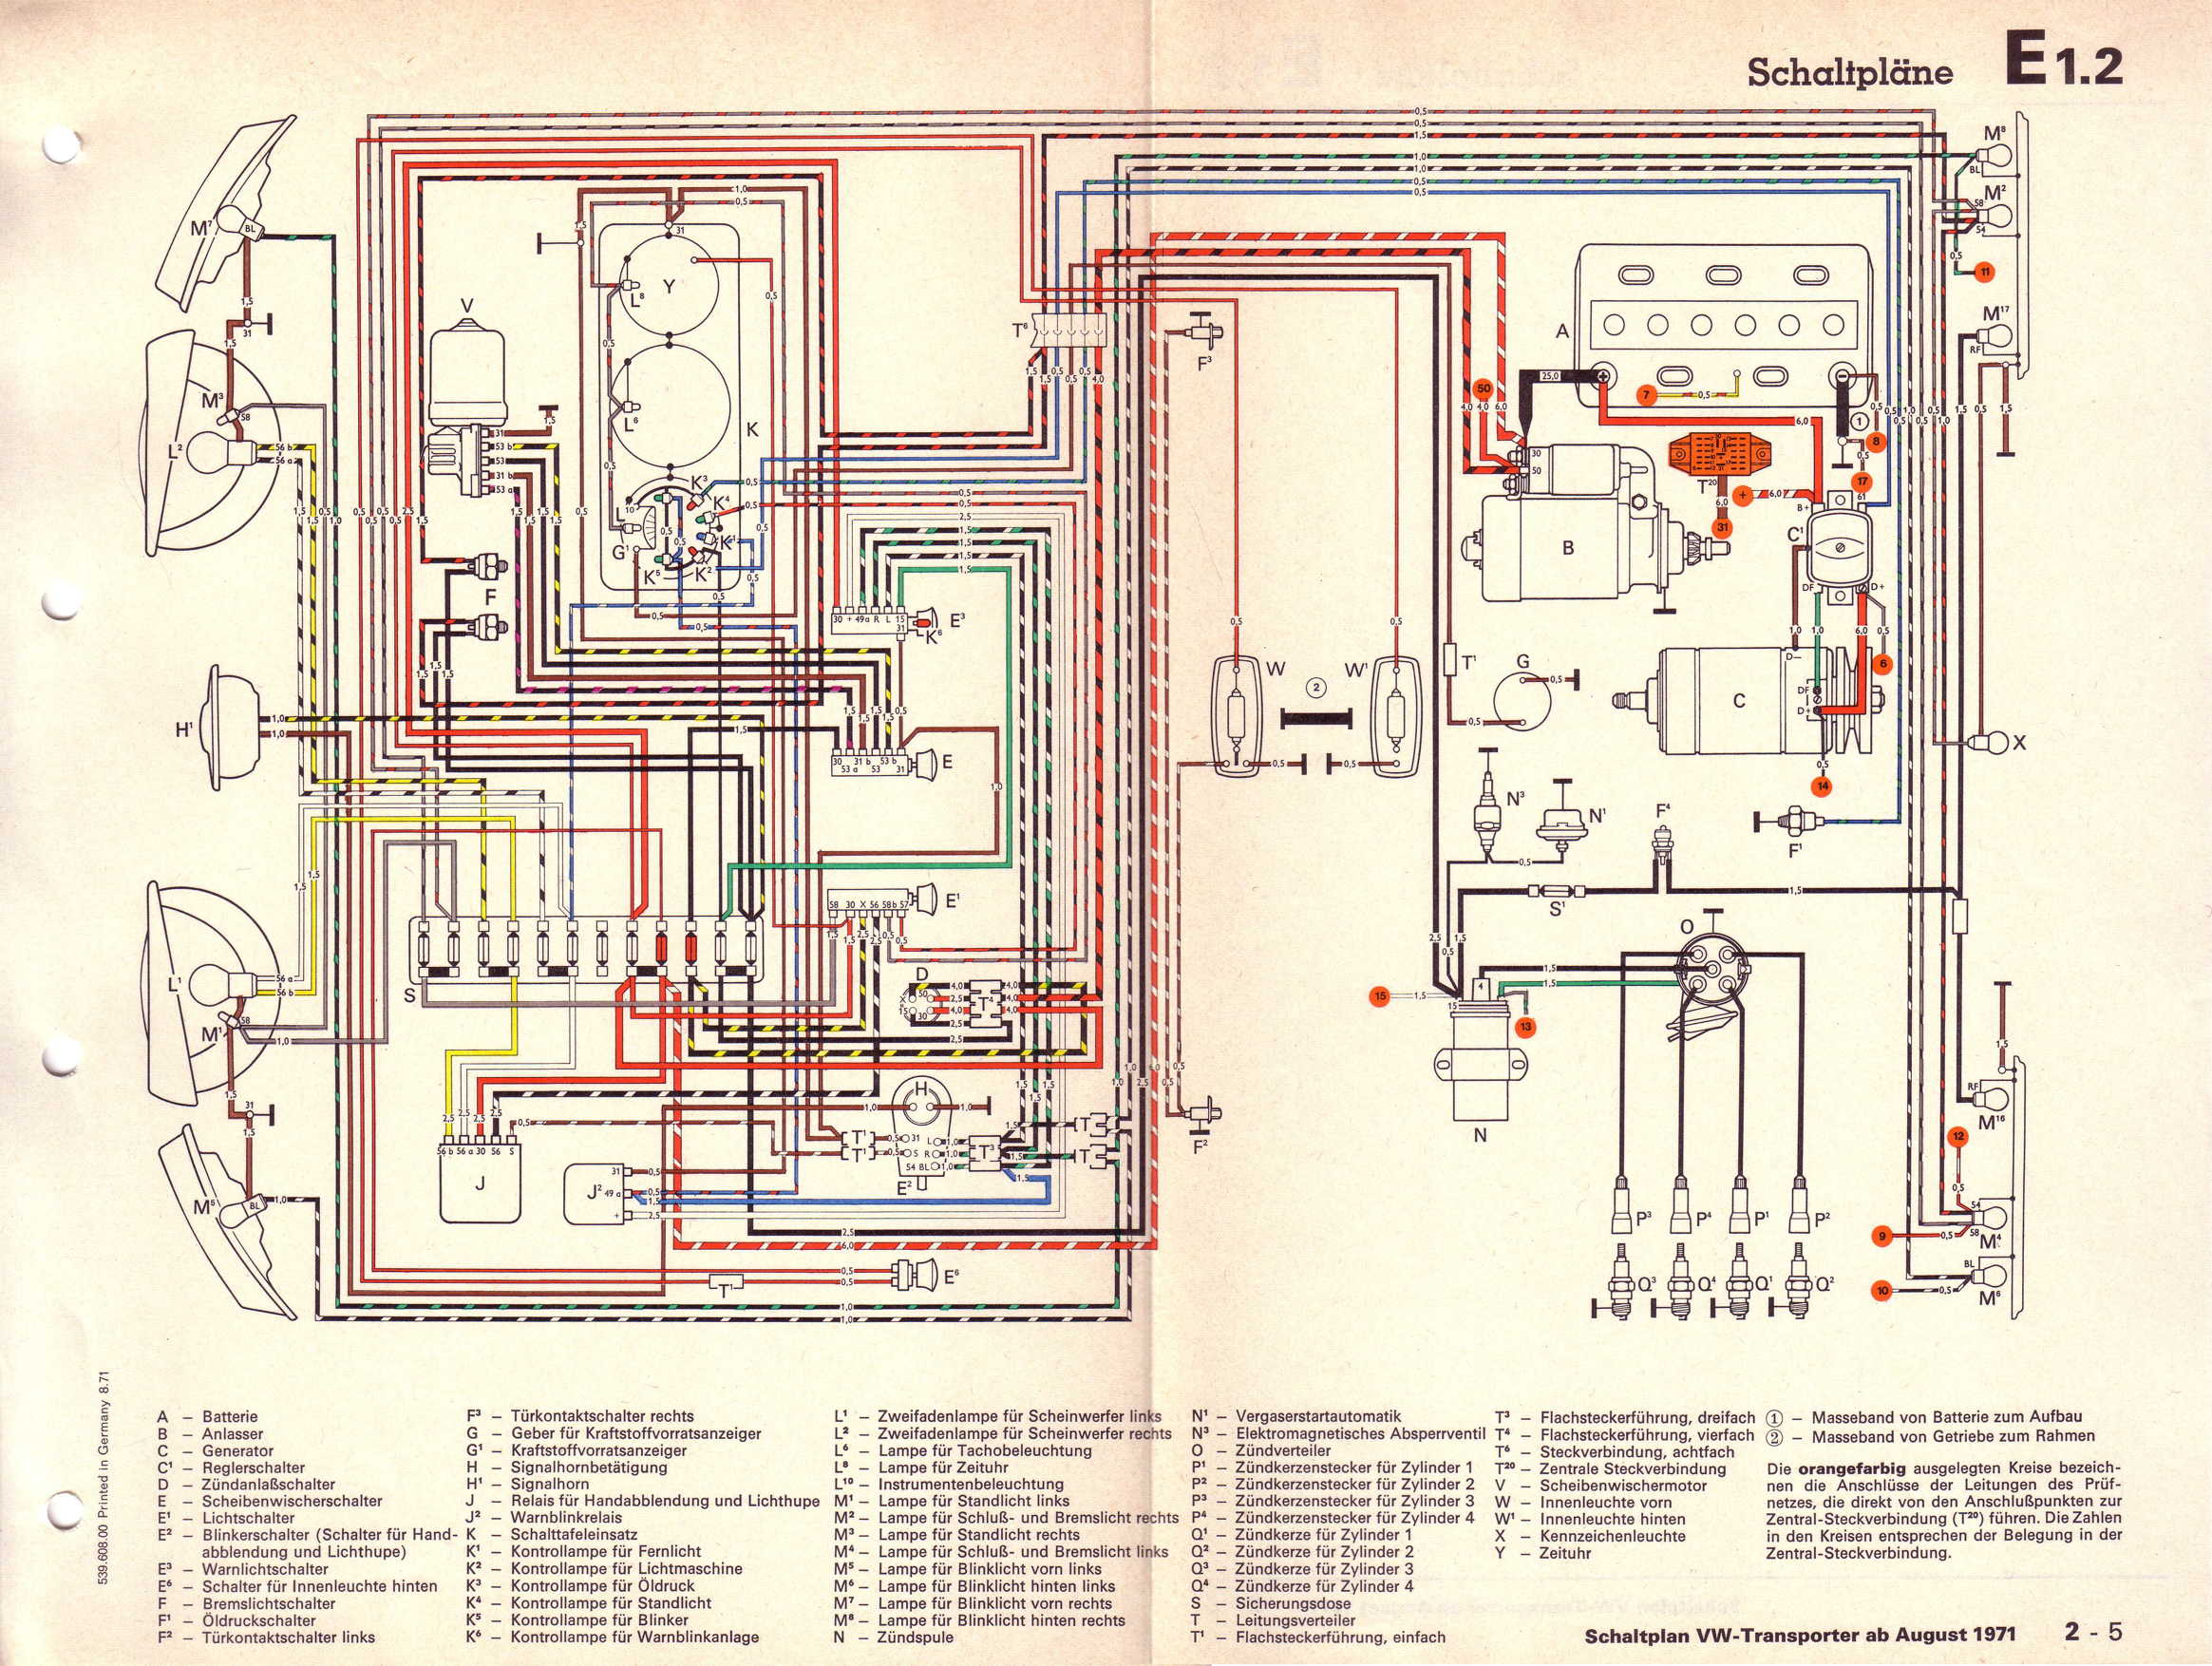 Vw T2 Wiring Diagram 1977 Library Volkswagen T5 Transporter 16 L Vergasermotor Ab August 1971